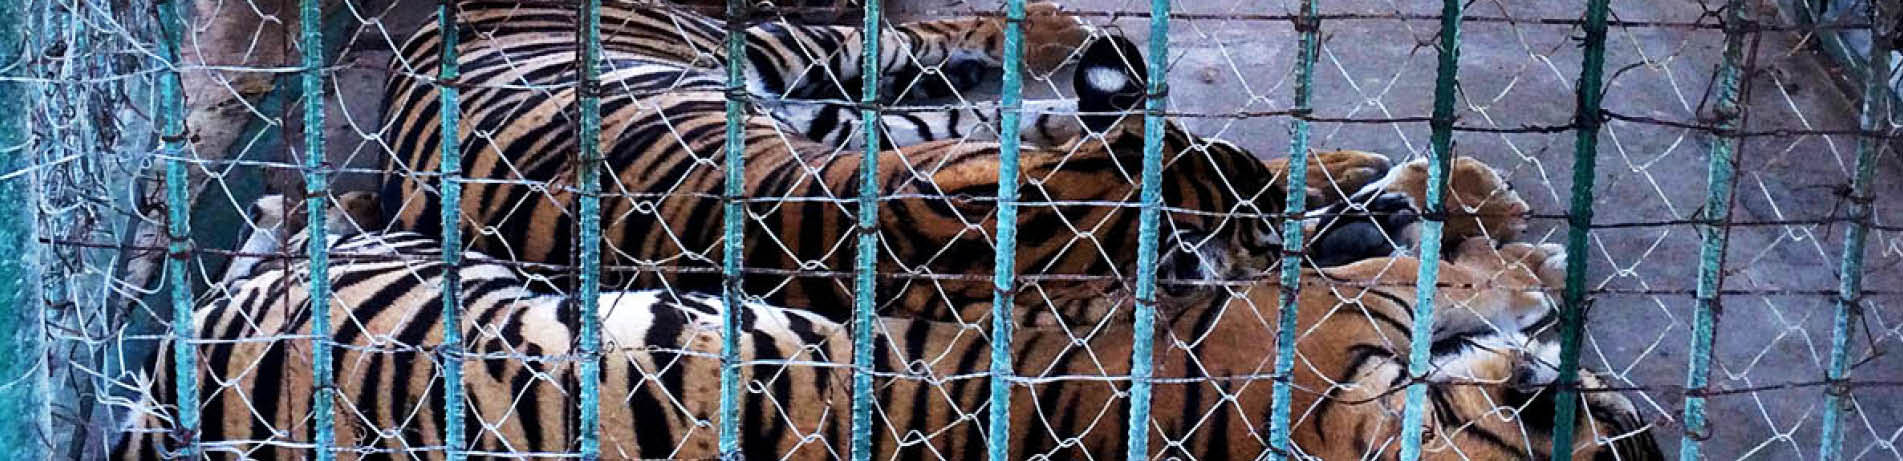 Captive tigers behind fence, China